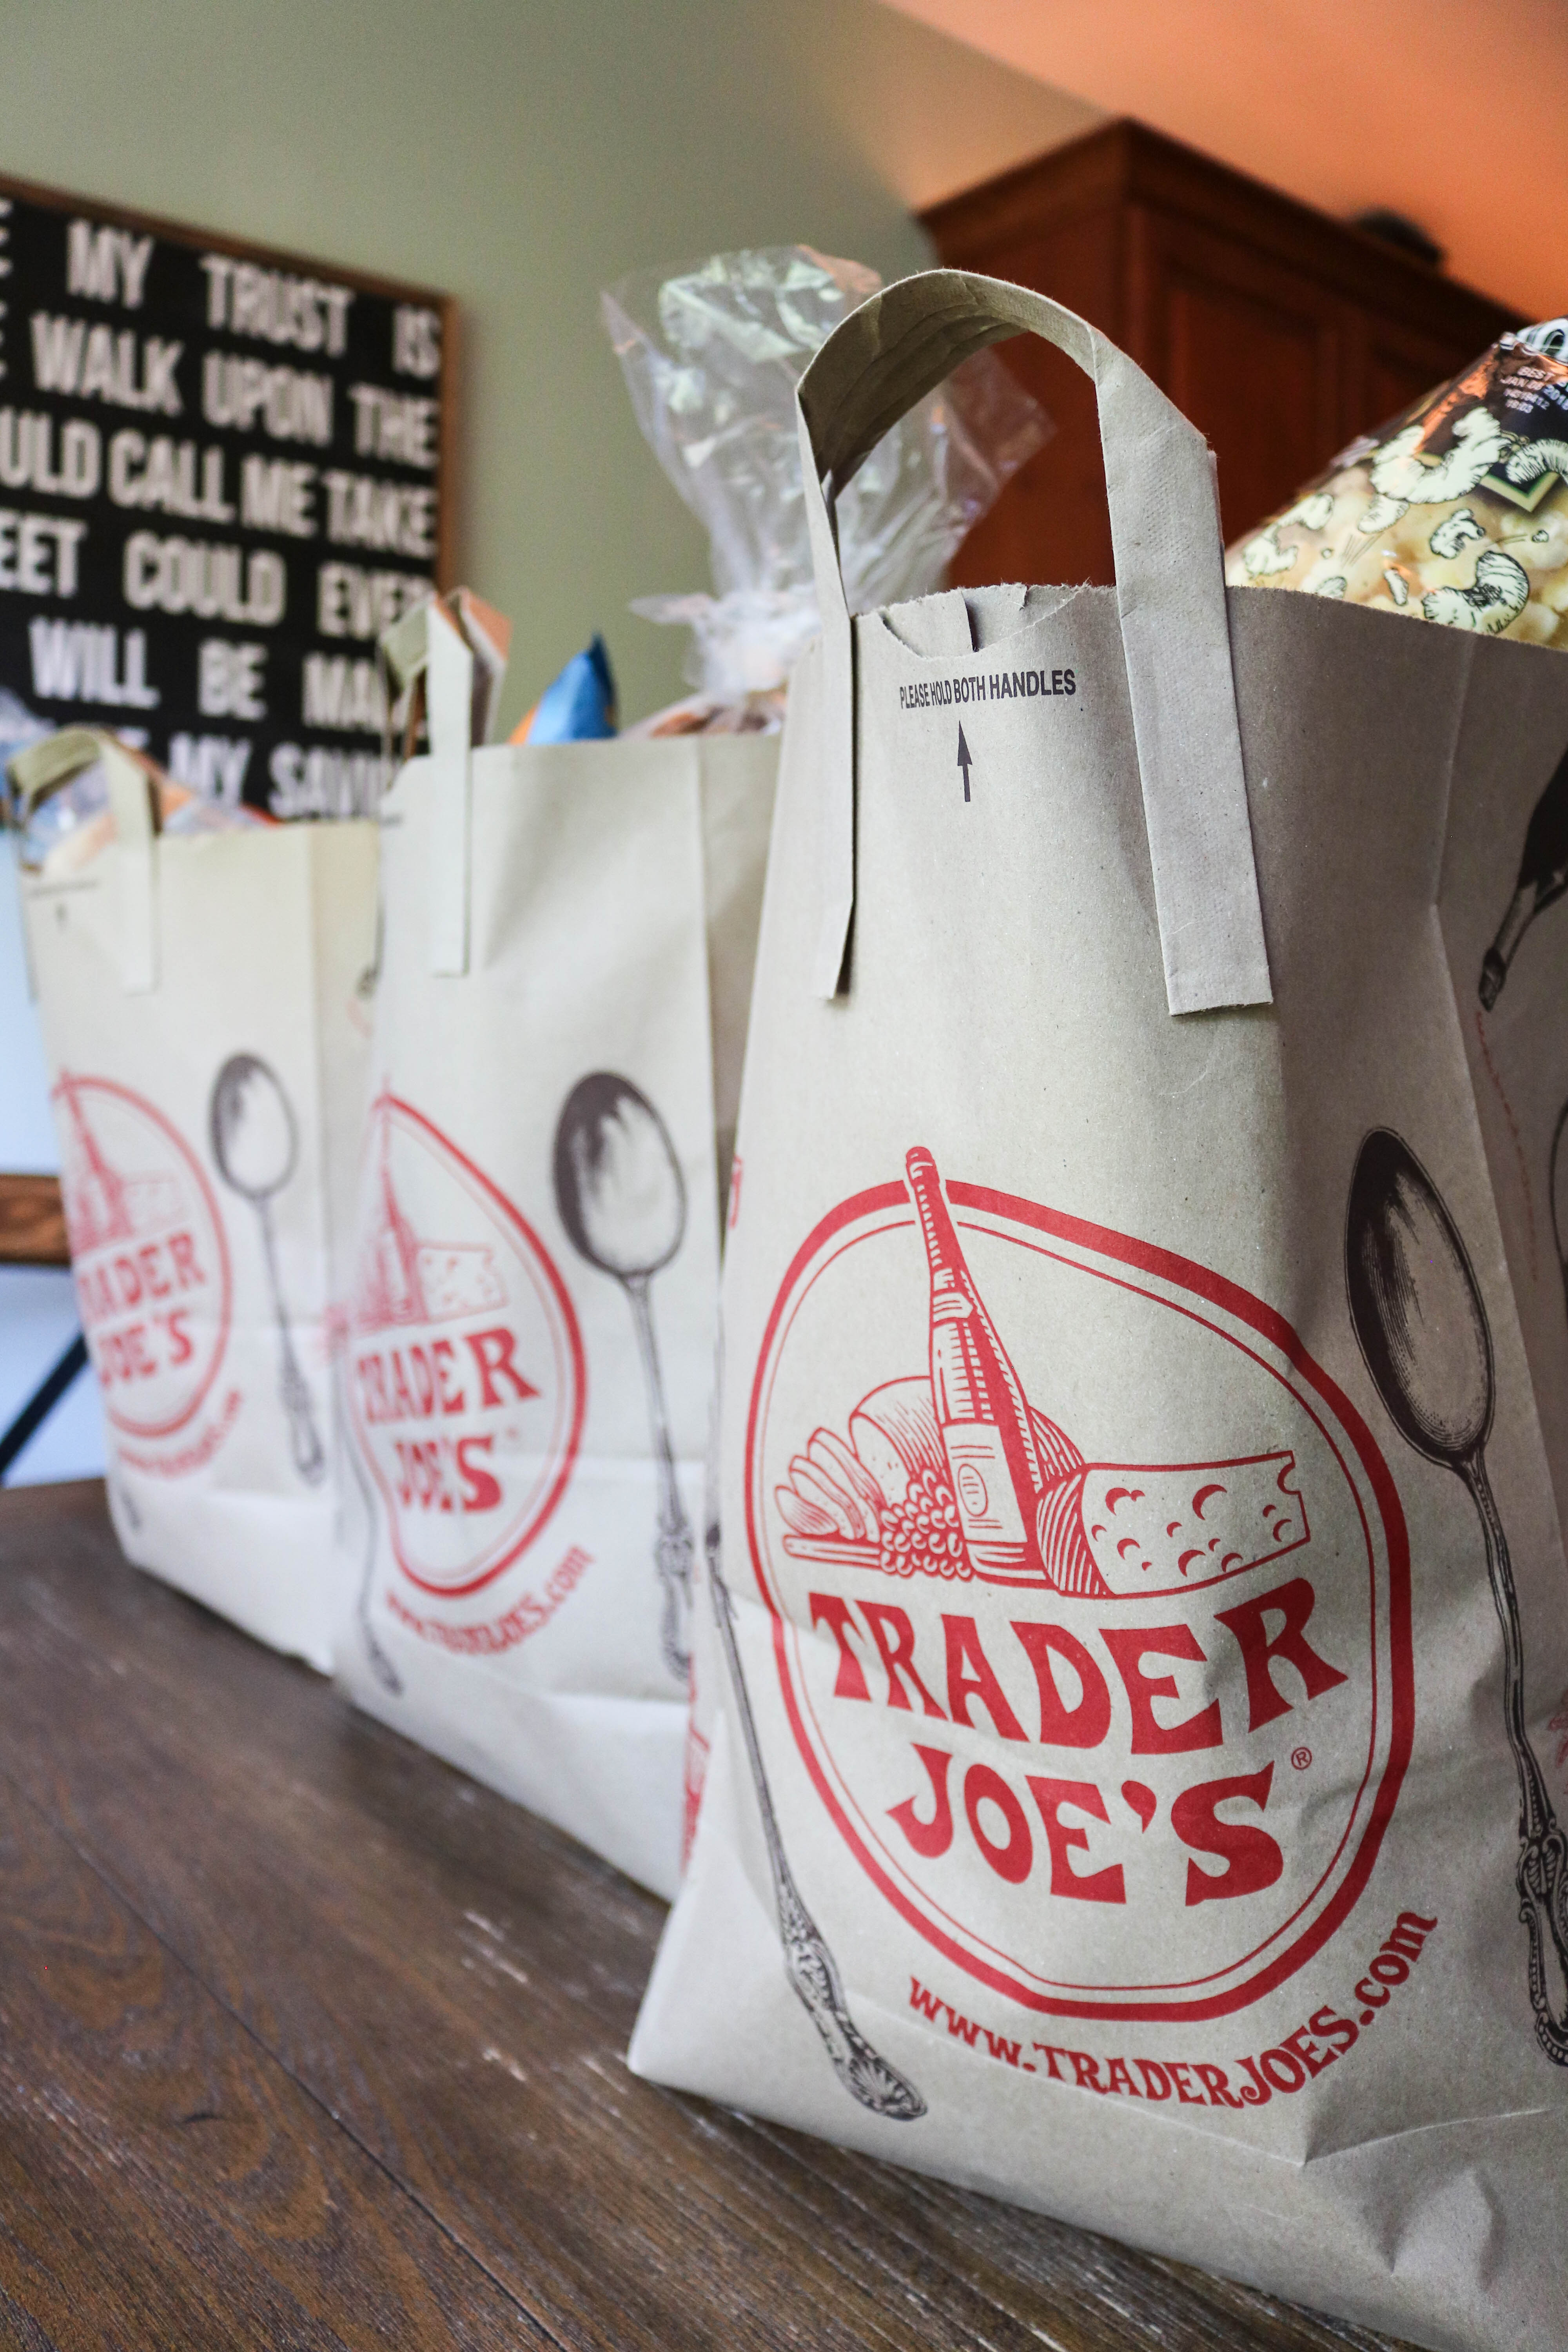 What I Buy at Trader Joe's - Trader Joe's Grocery Haul! - My Trader Joes Shopping List by popular Philadelphia lifestyle blogger Coming Up Roses